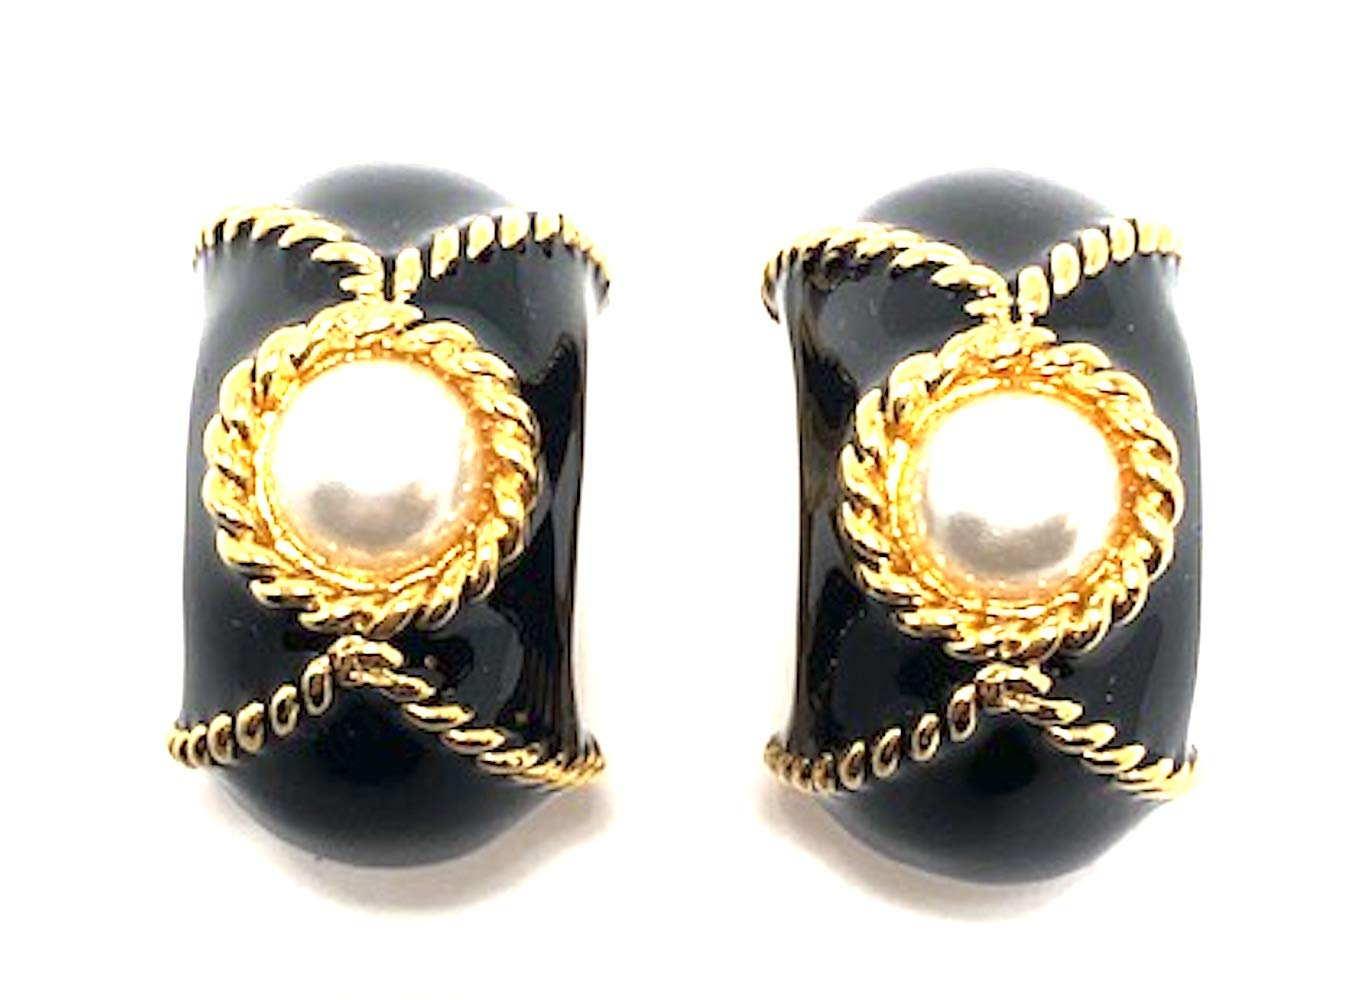 Kenneth Jay Lane, Gold and Black Enamel Bracelet with Pearl CABOCHON Accents, Gorgeous! (Earrings/Clip) by Kenneth Jay Lane